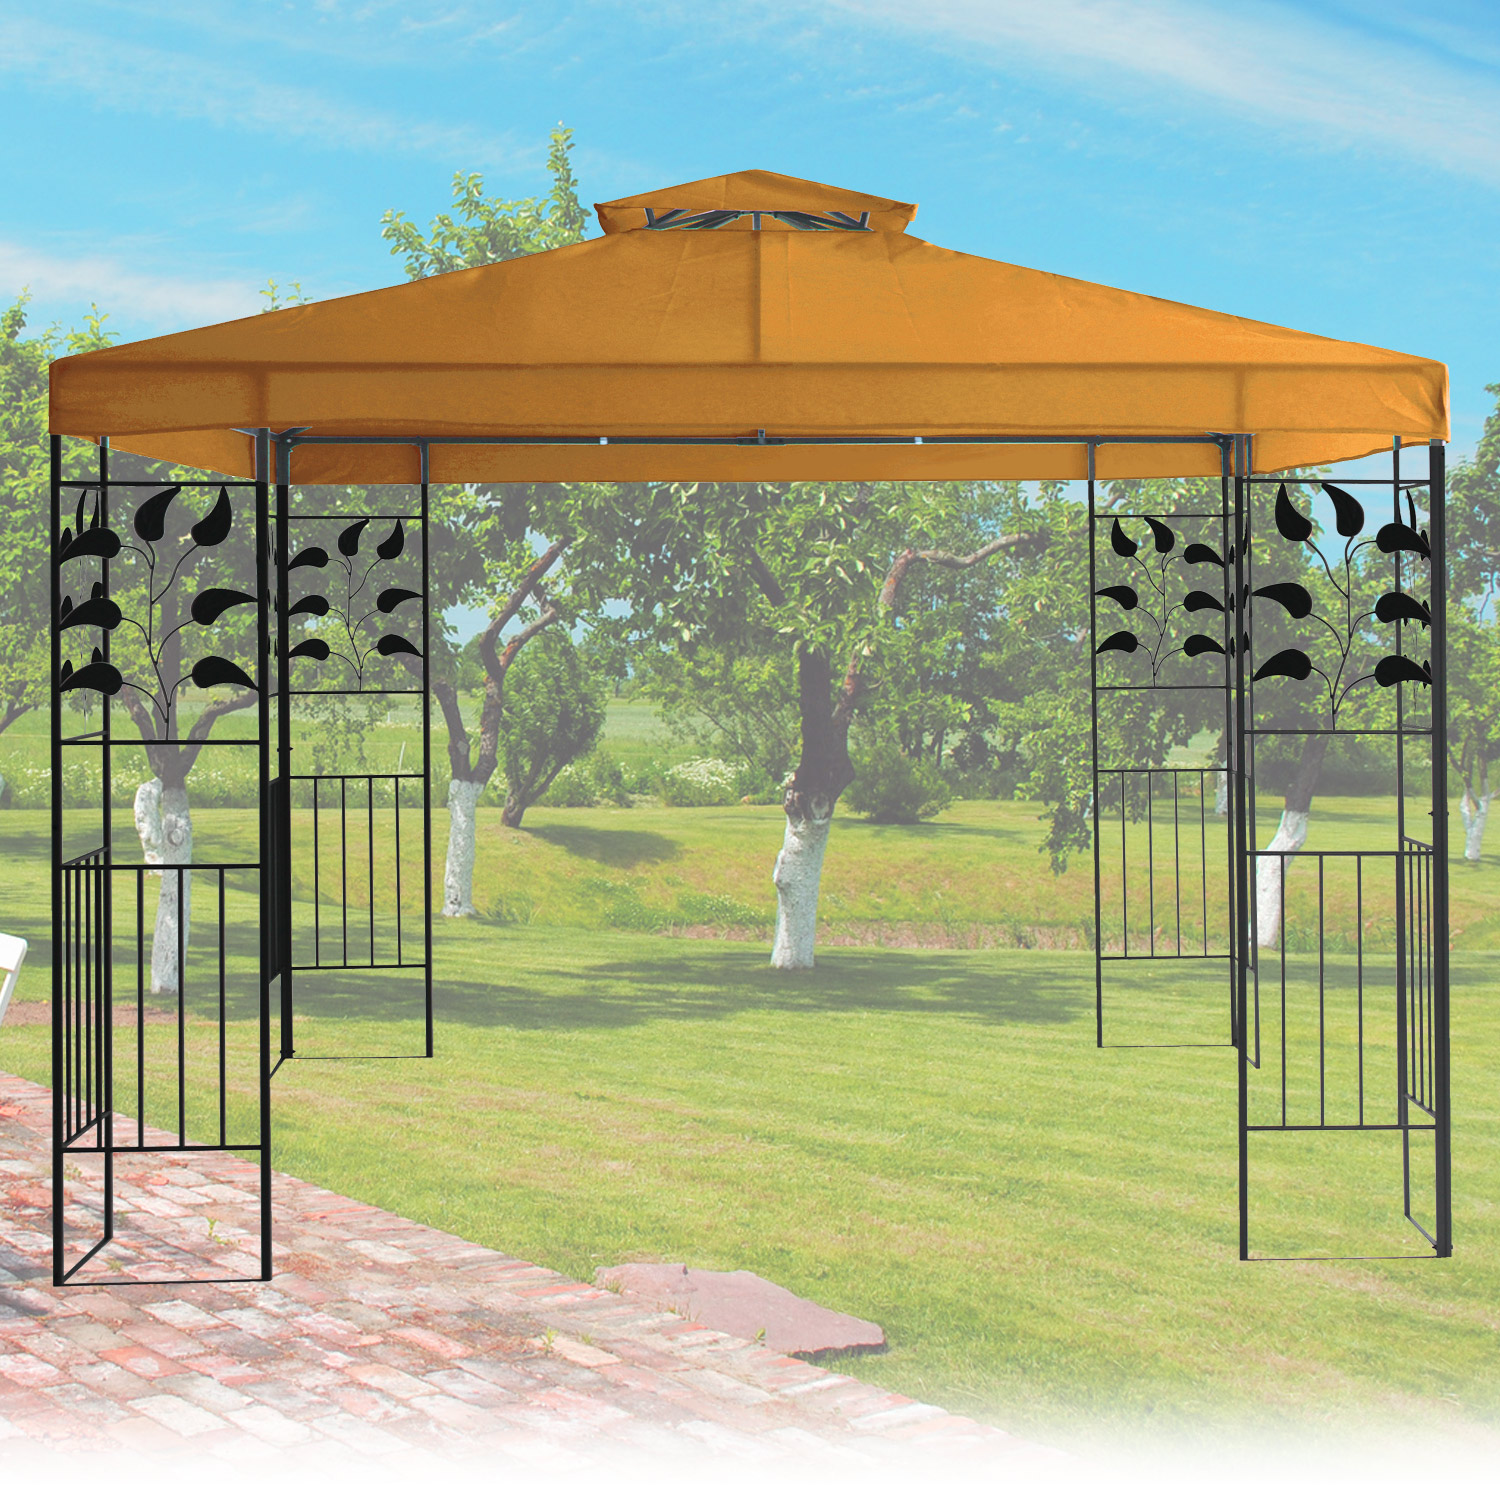 pavillon 3x3m metall gartenpavillon festzelt dach zelt garten wasserfest orange. Black Bedroom Furniture Sets. Home Design Ideas